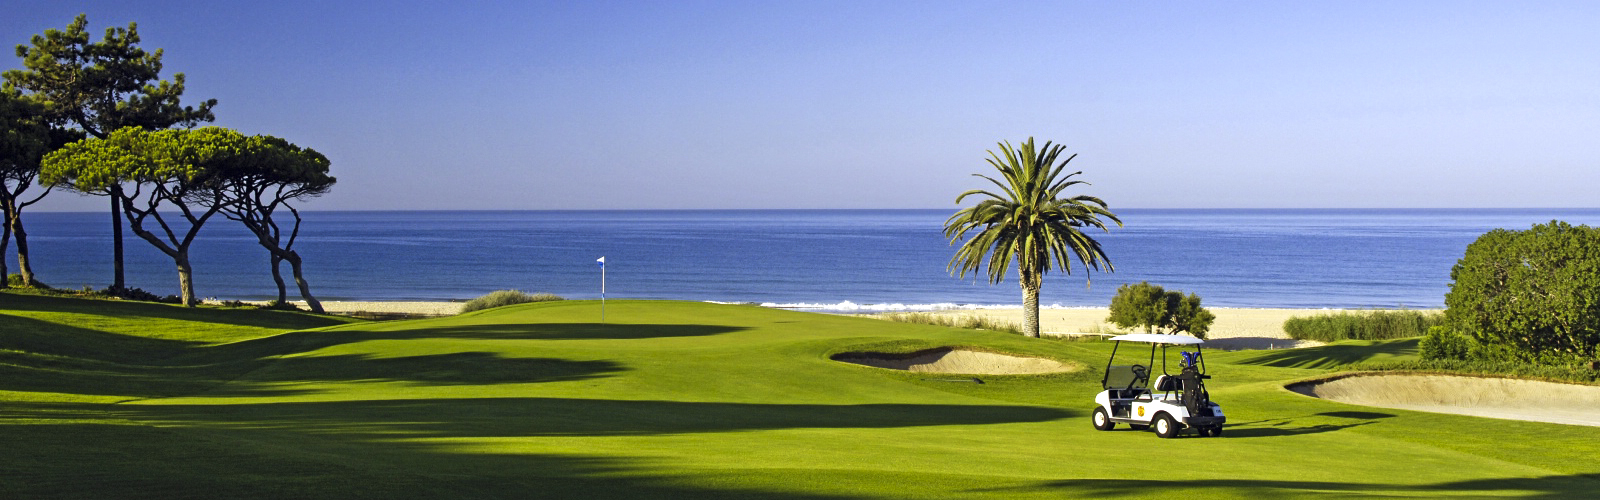 Almancil - Quinta do Lago- golf.jpg